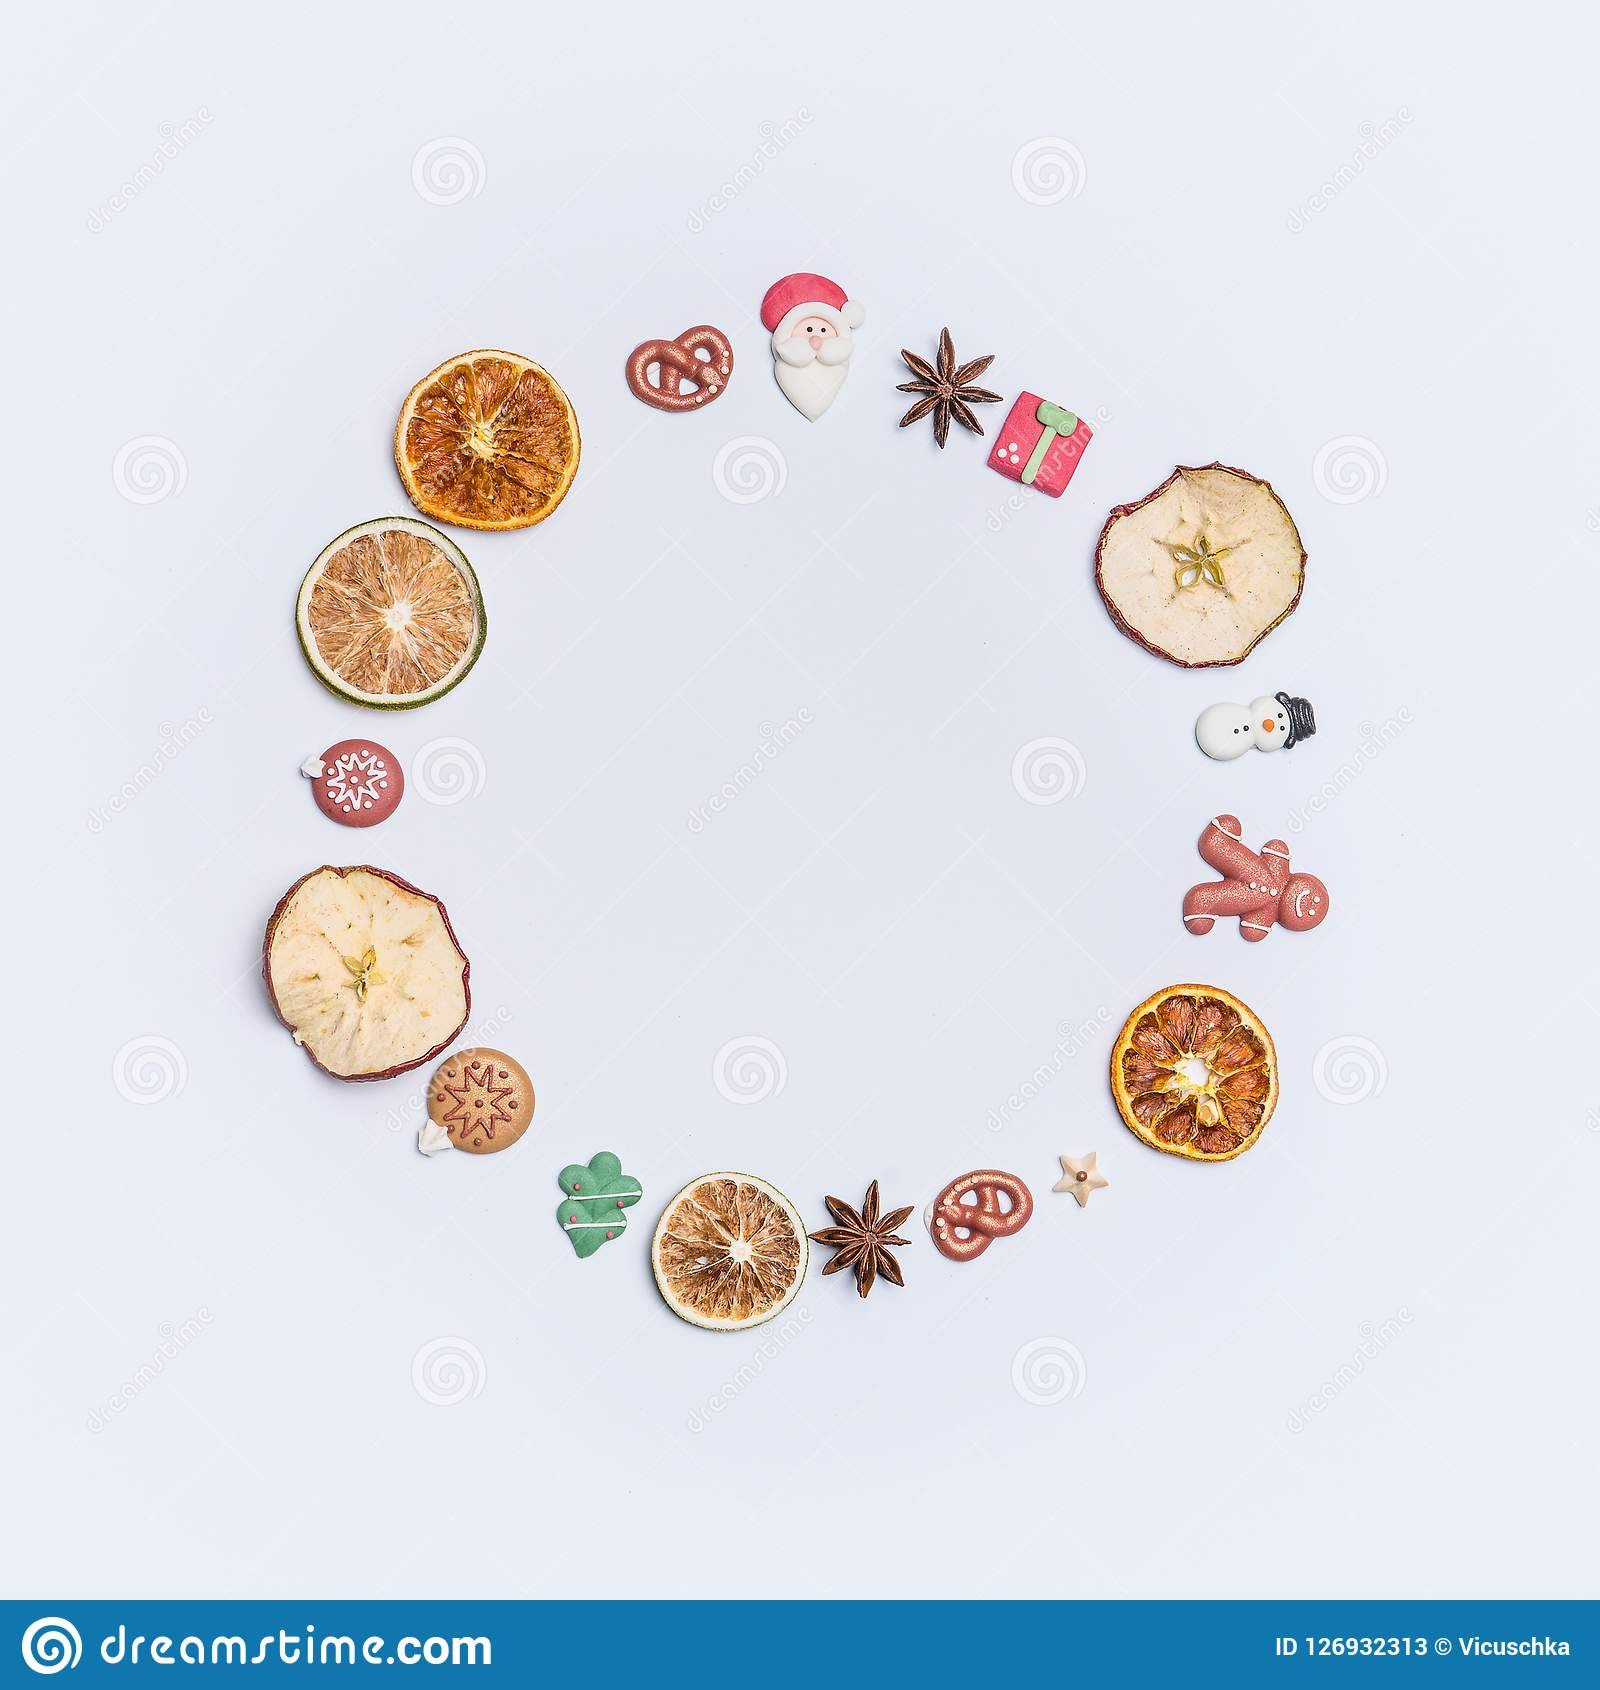 Christmas round circle fame or wreath made with dried fruits and anise stars and marzipan Christmas decor figures